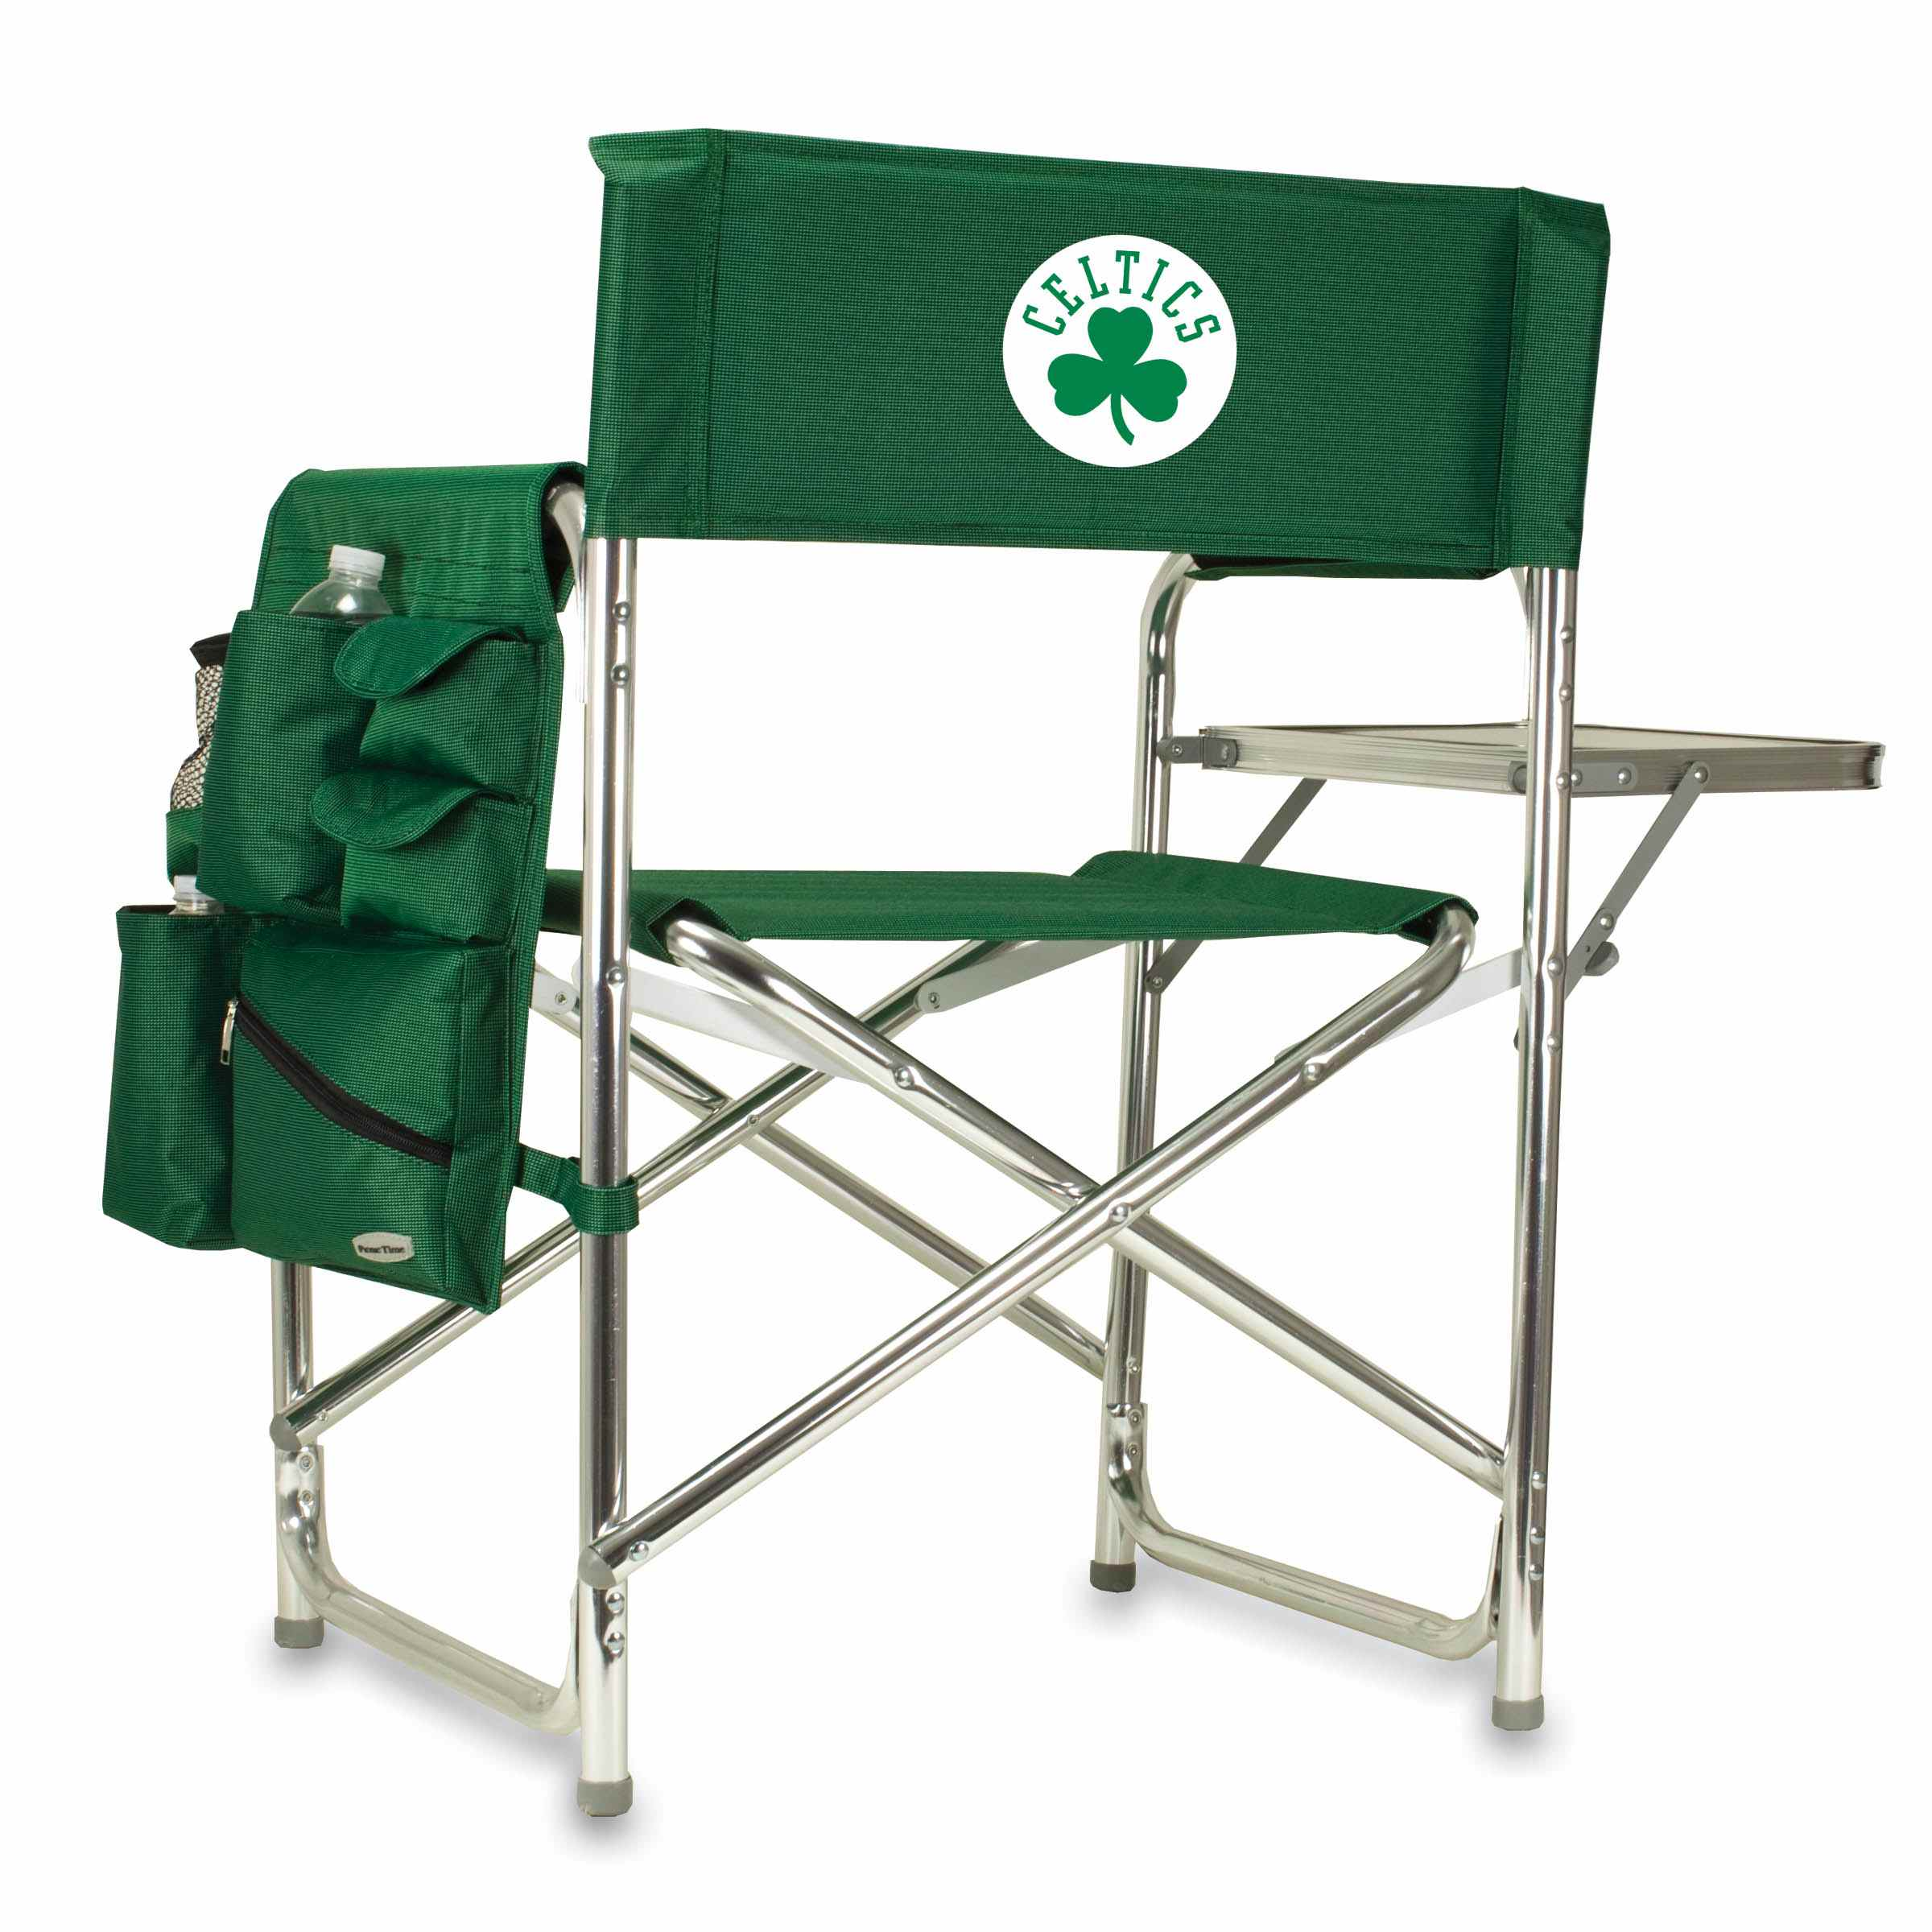 Picnic Time Nba Sports Chair Boston Celtics